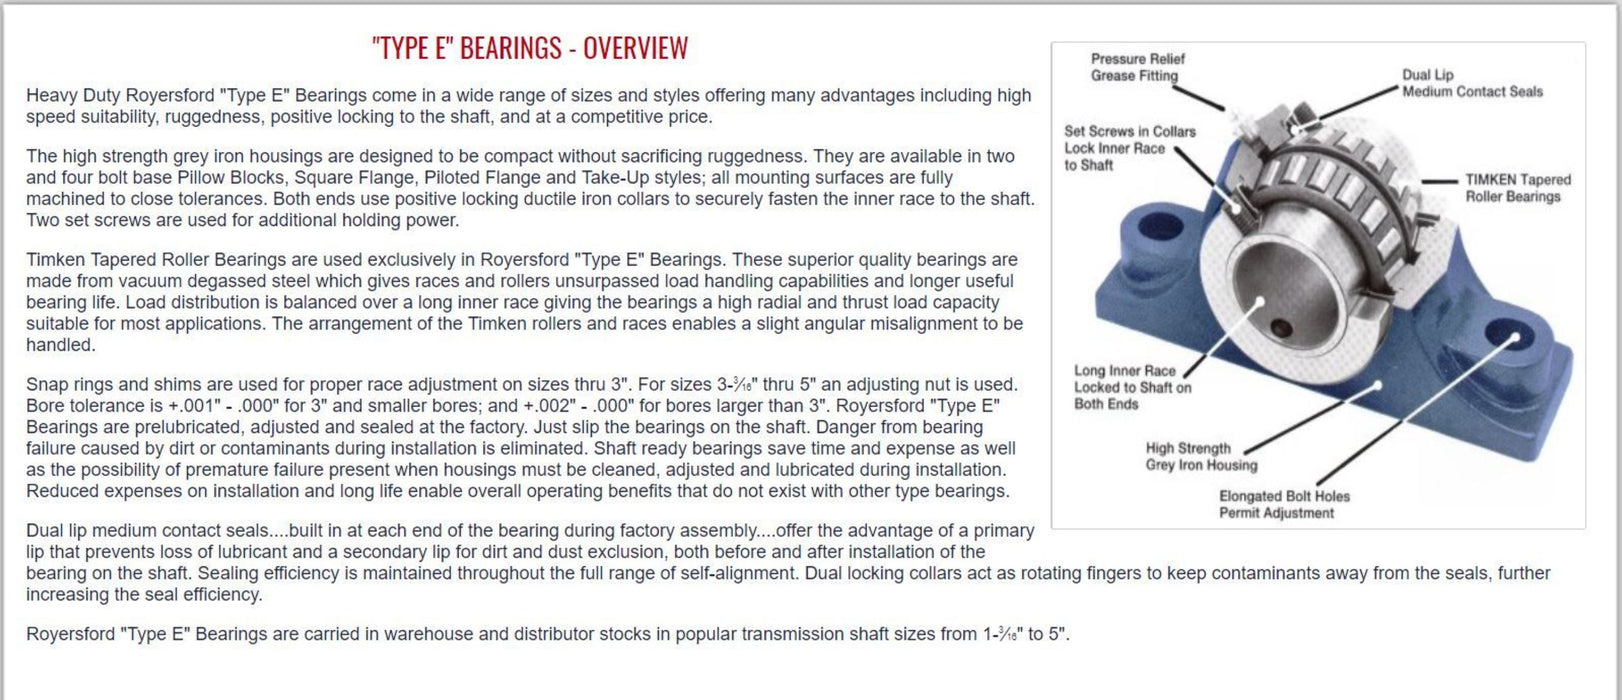 20-05-0110, ROYERSFORD TYPE E 4 Bolt Square Flange Bearing, 1-5/8 with Timken Tapered Roller Bearings